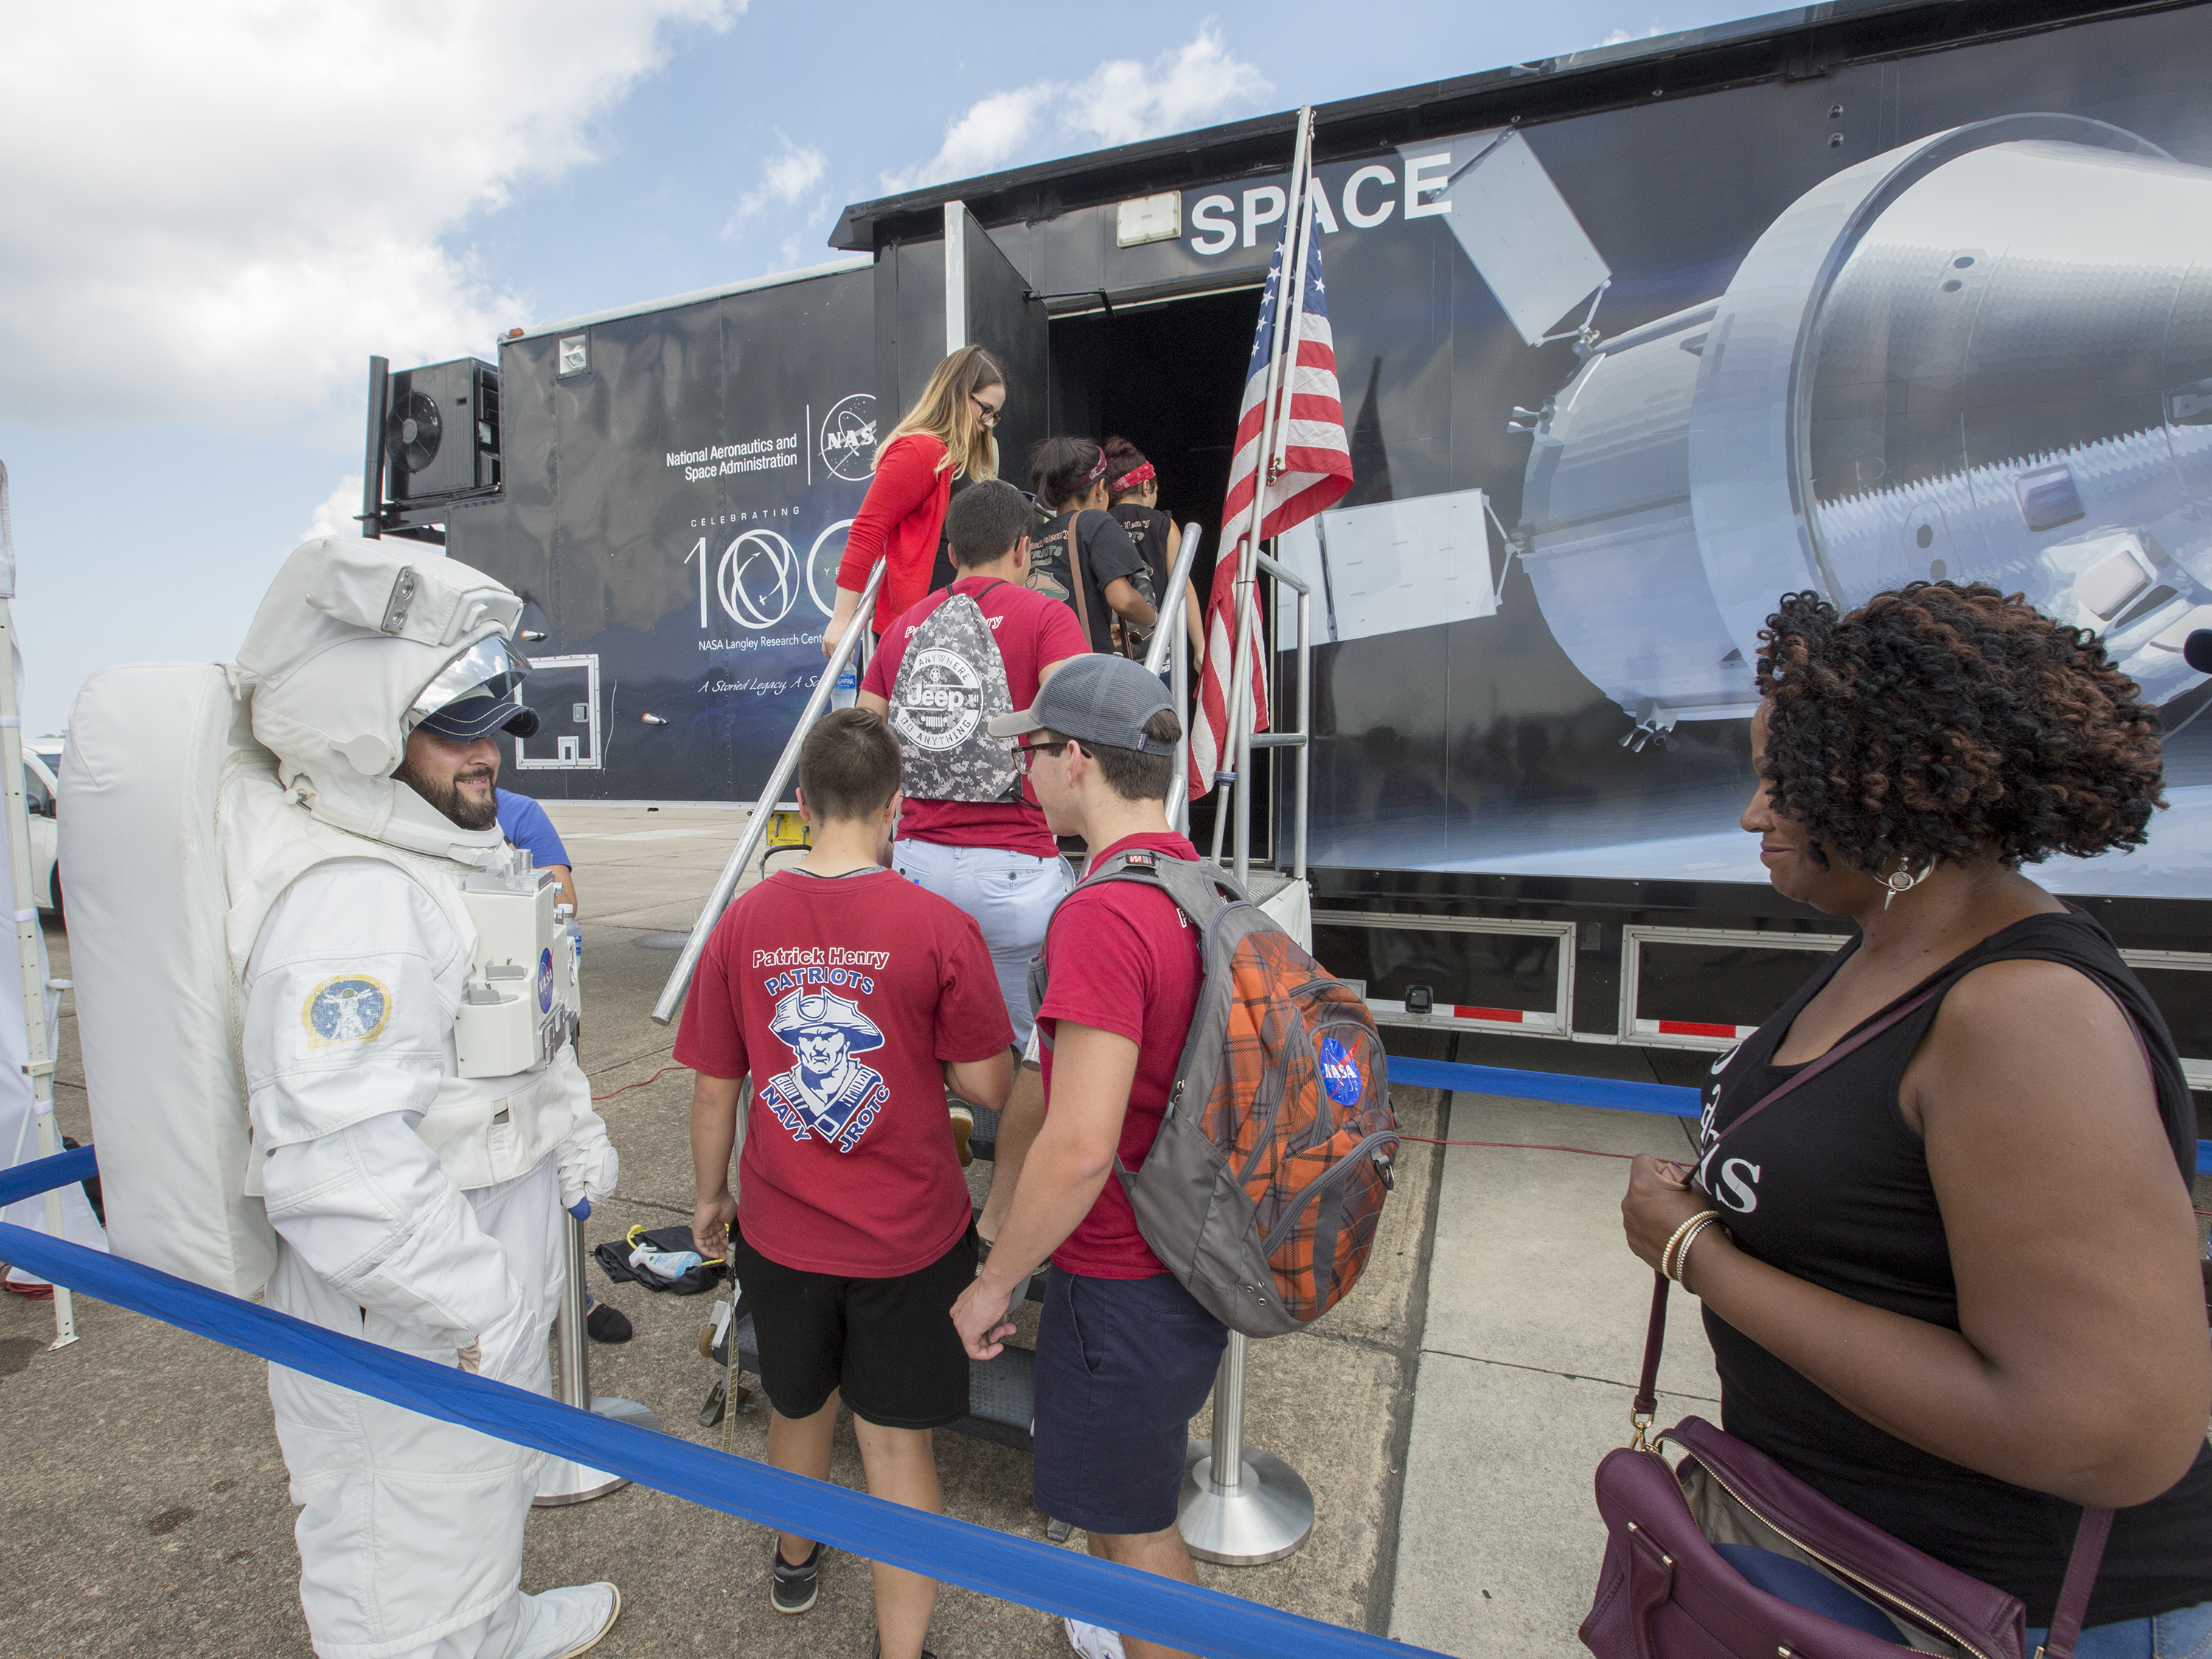 Nasa federal credit union security center - Thousands Of Attendees At Nas Oceana S Air Show Learned More About Nasa S Langley Research Center And